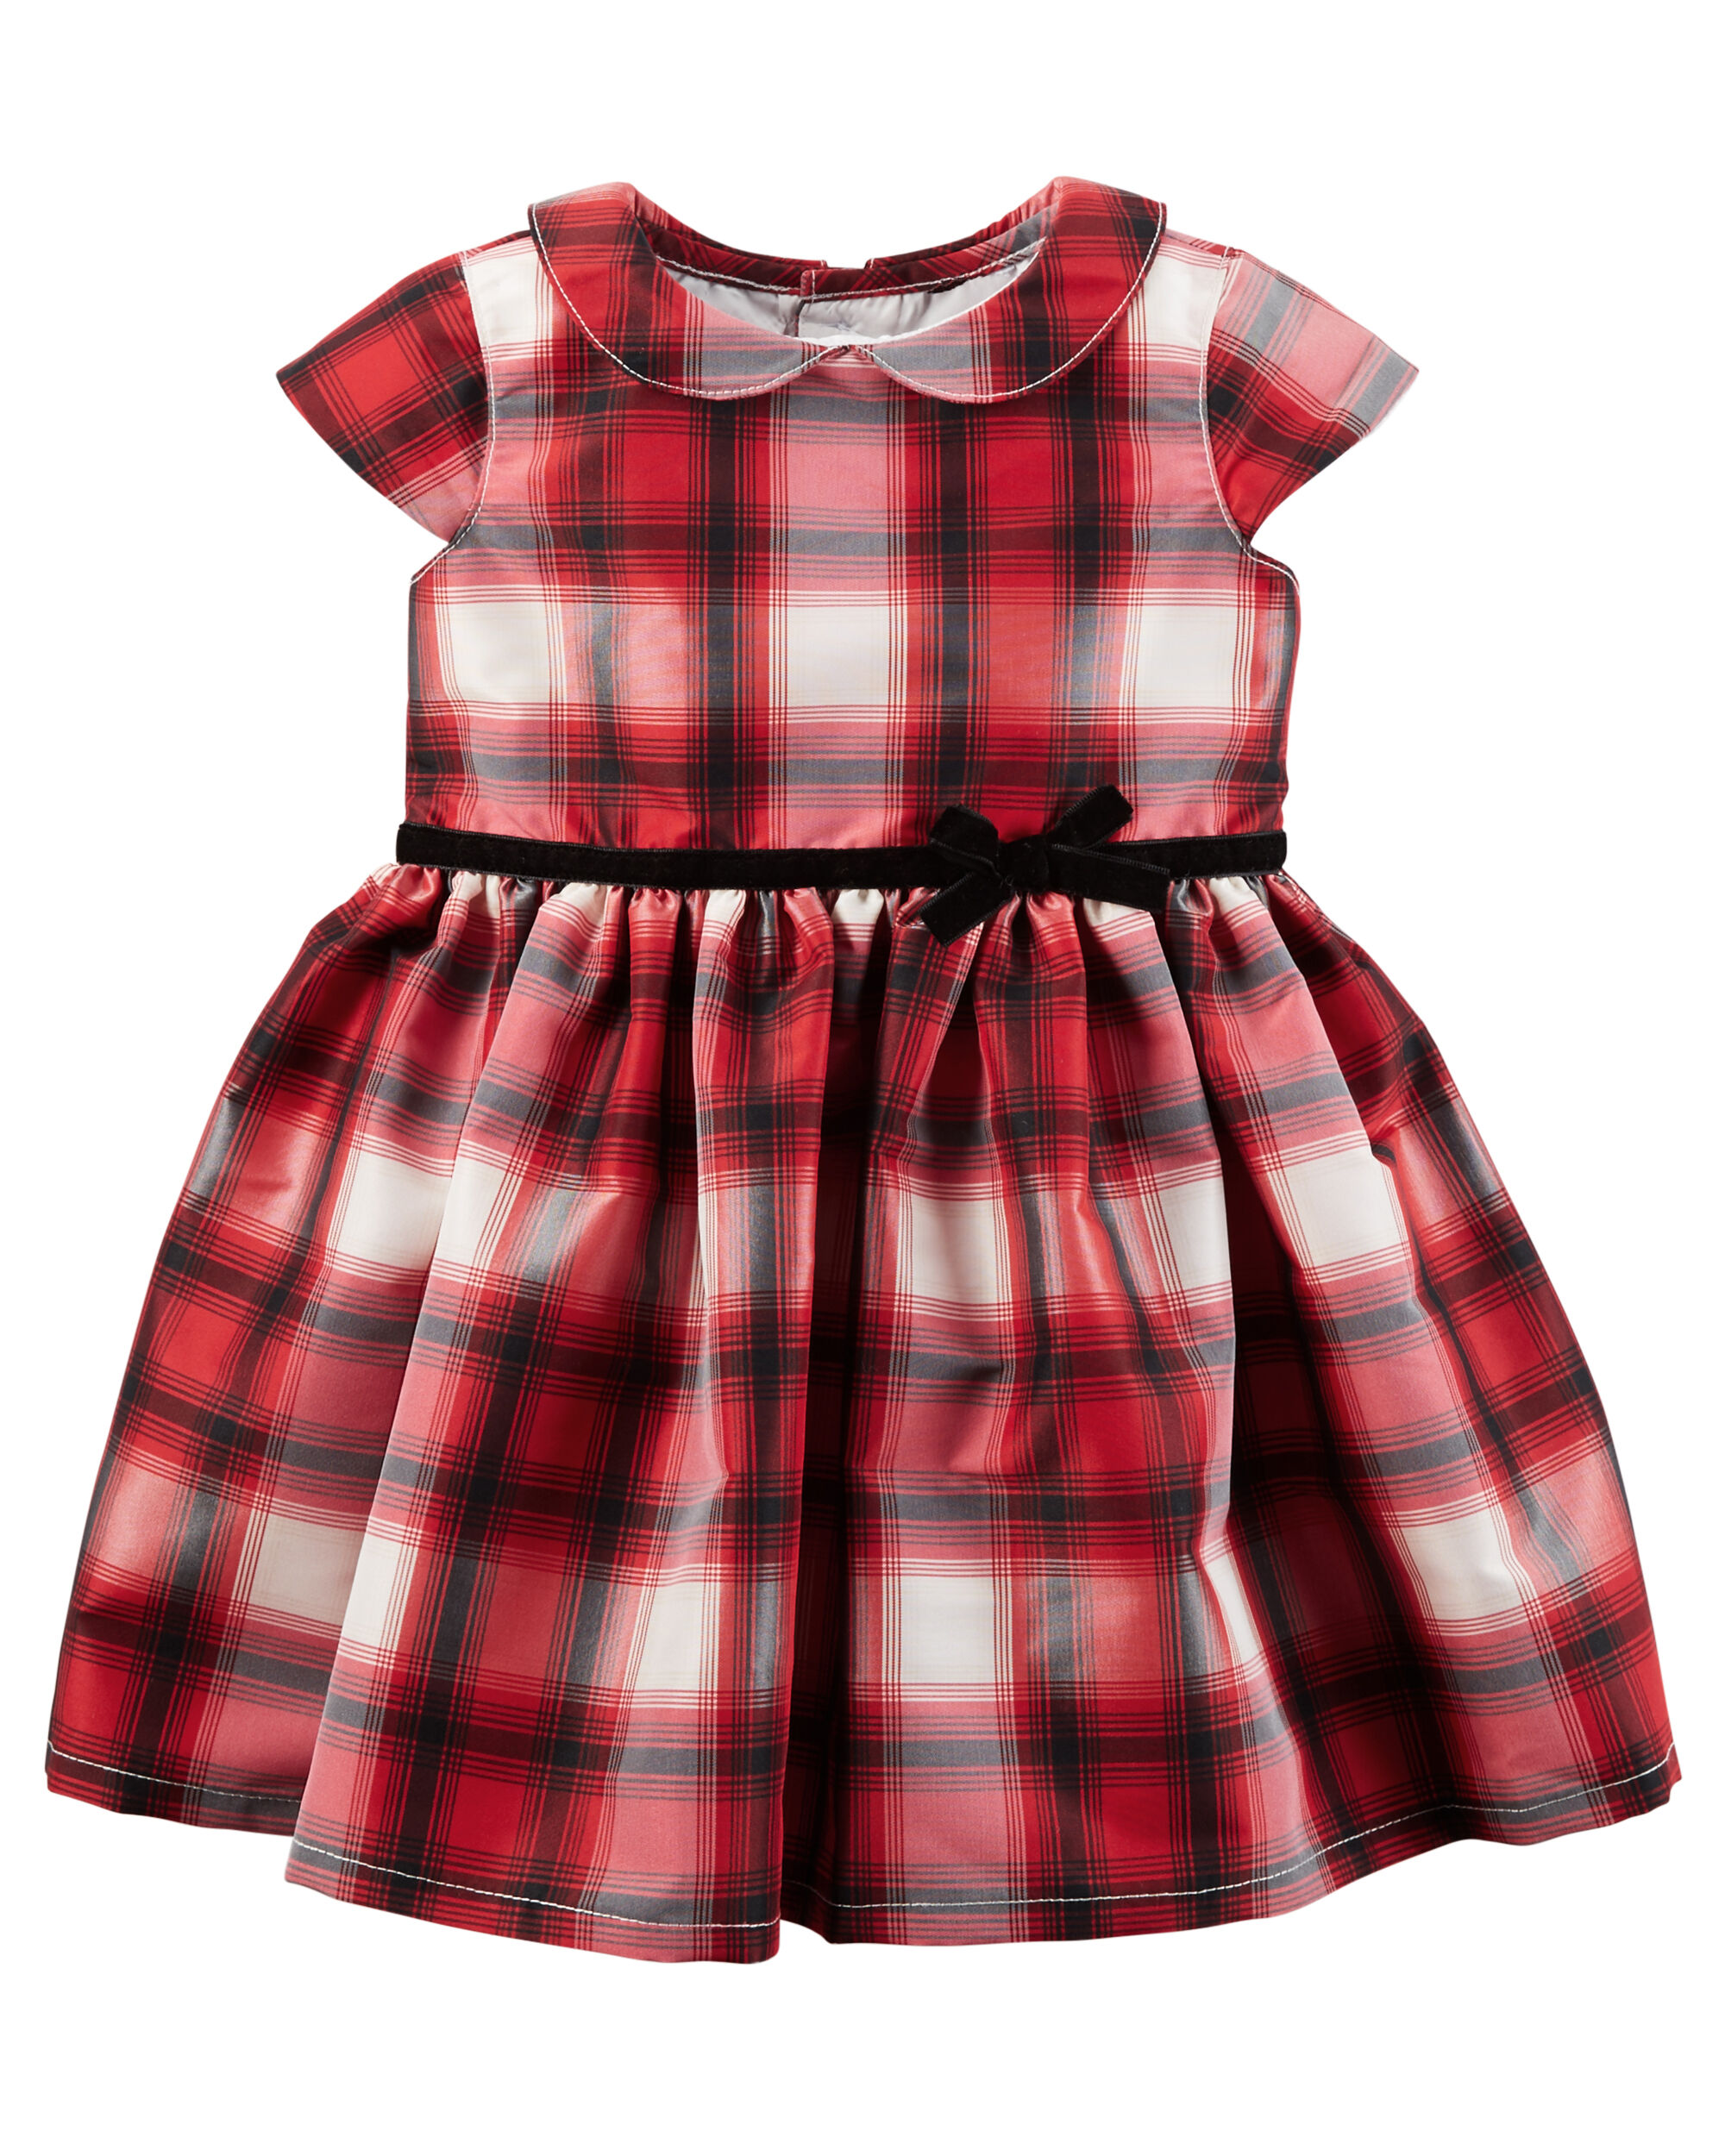 Plaid Tafetta Dress